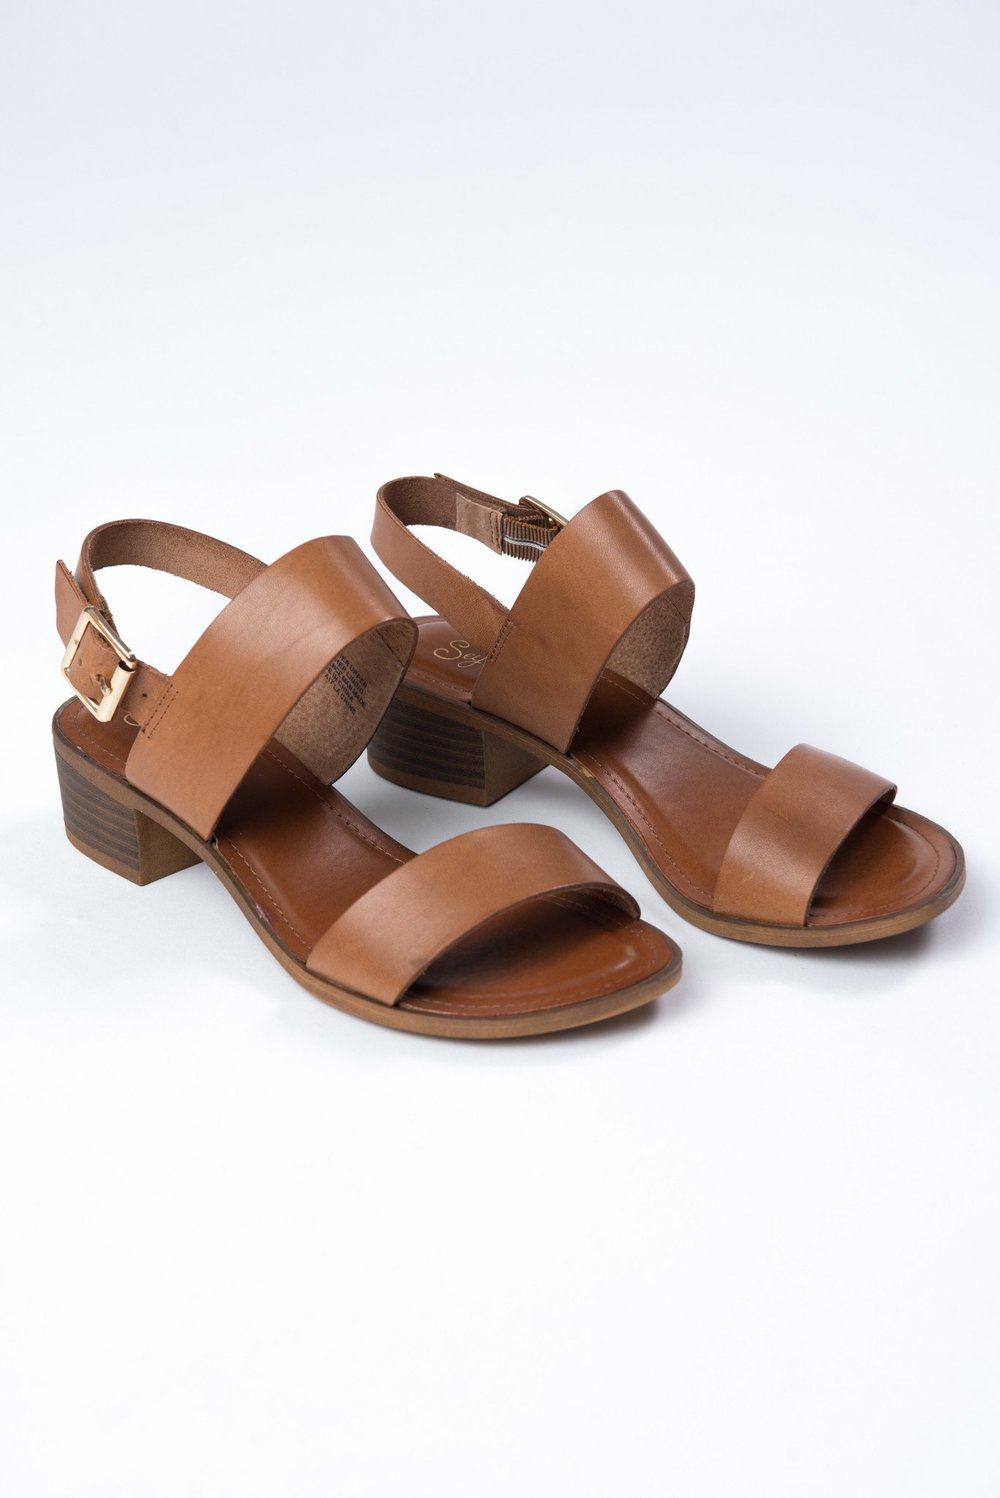 👡shoes👡 - Any mom would love a new pair of shoes! The Seychelles Cassiopeia Tan Leather Slingback Sandal from Whimsy + Row are perfect for summer and go with any wardrobe. The comfortable fit and versatile look will have mom stepping into the new season with style.https://whimsyandrow.com/📍12513 Venice Blvd, Los Angeles, CA 90066